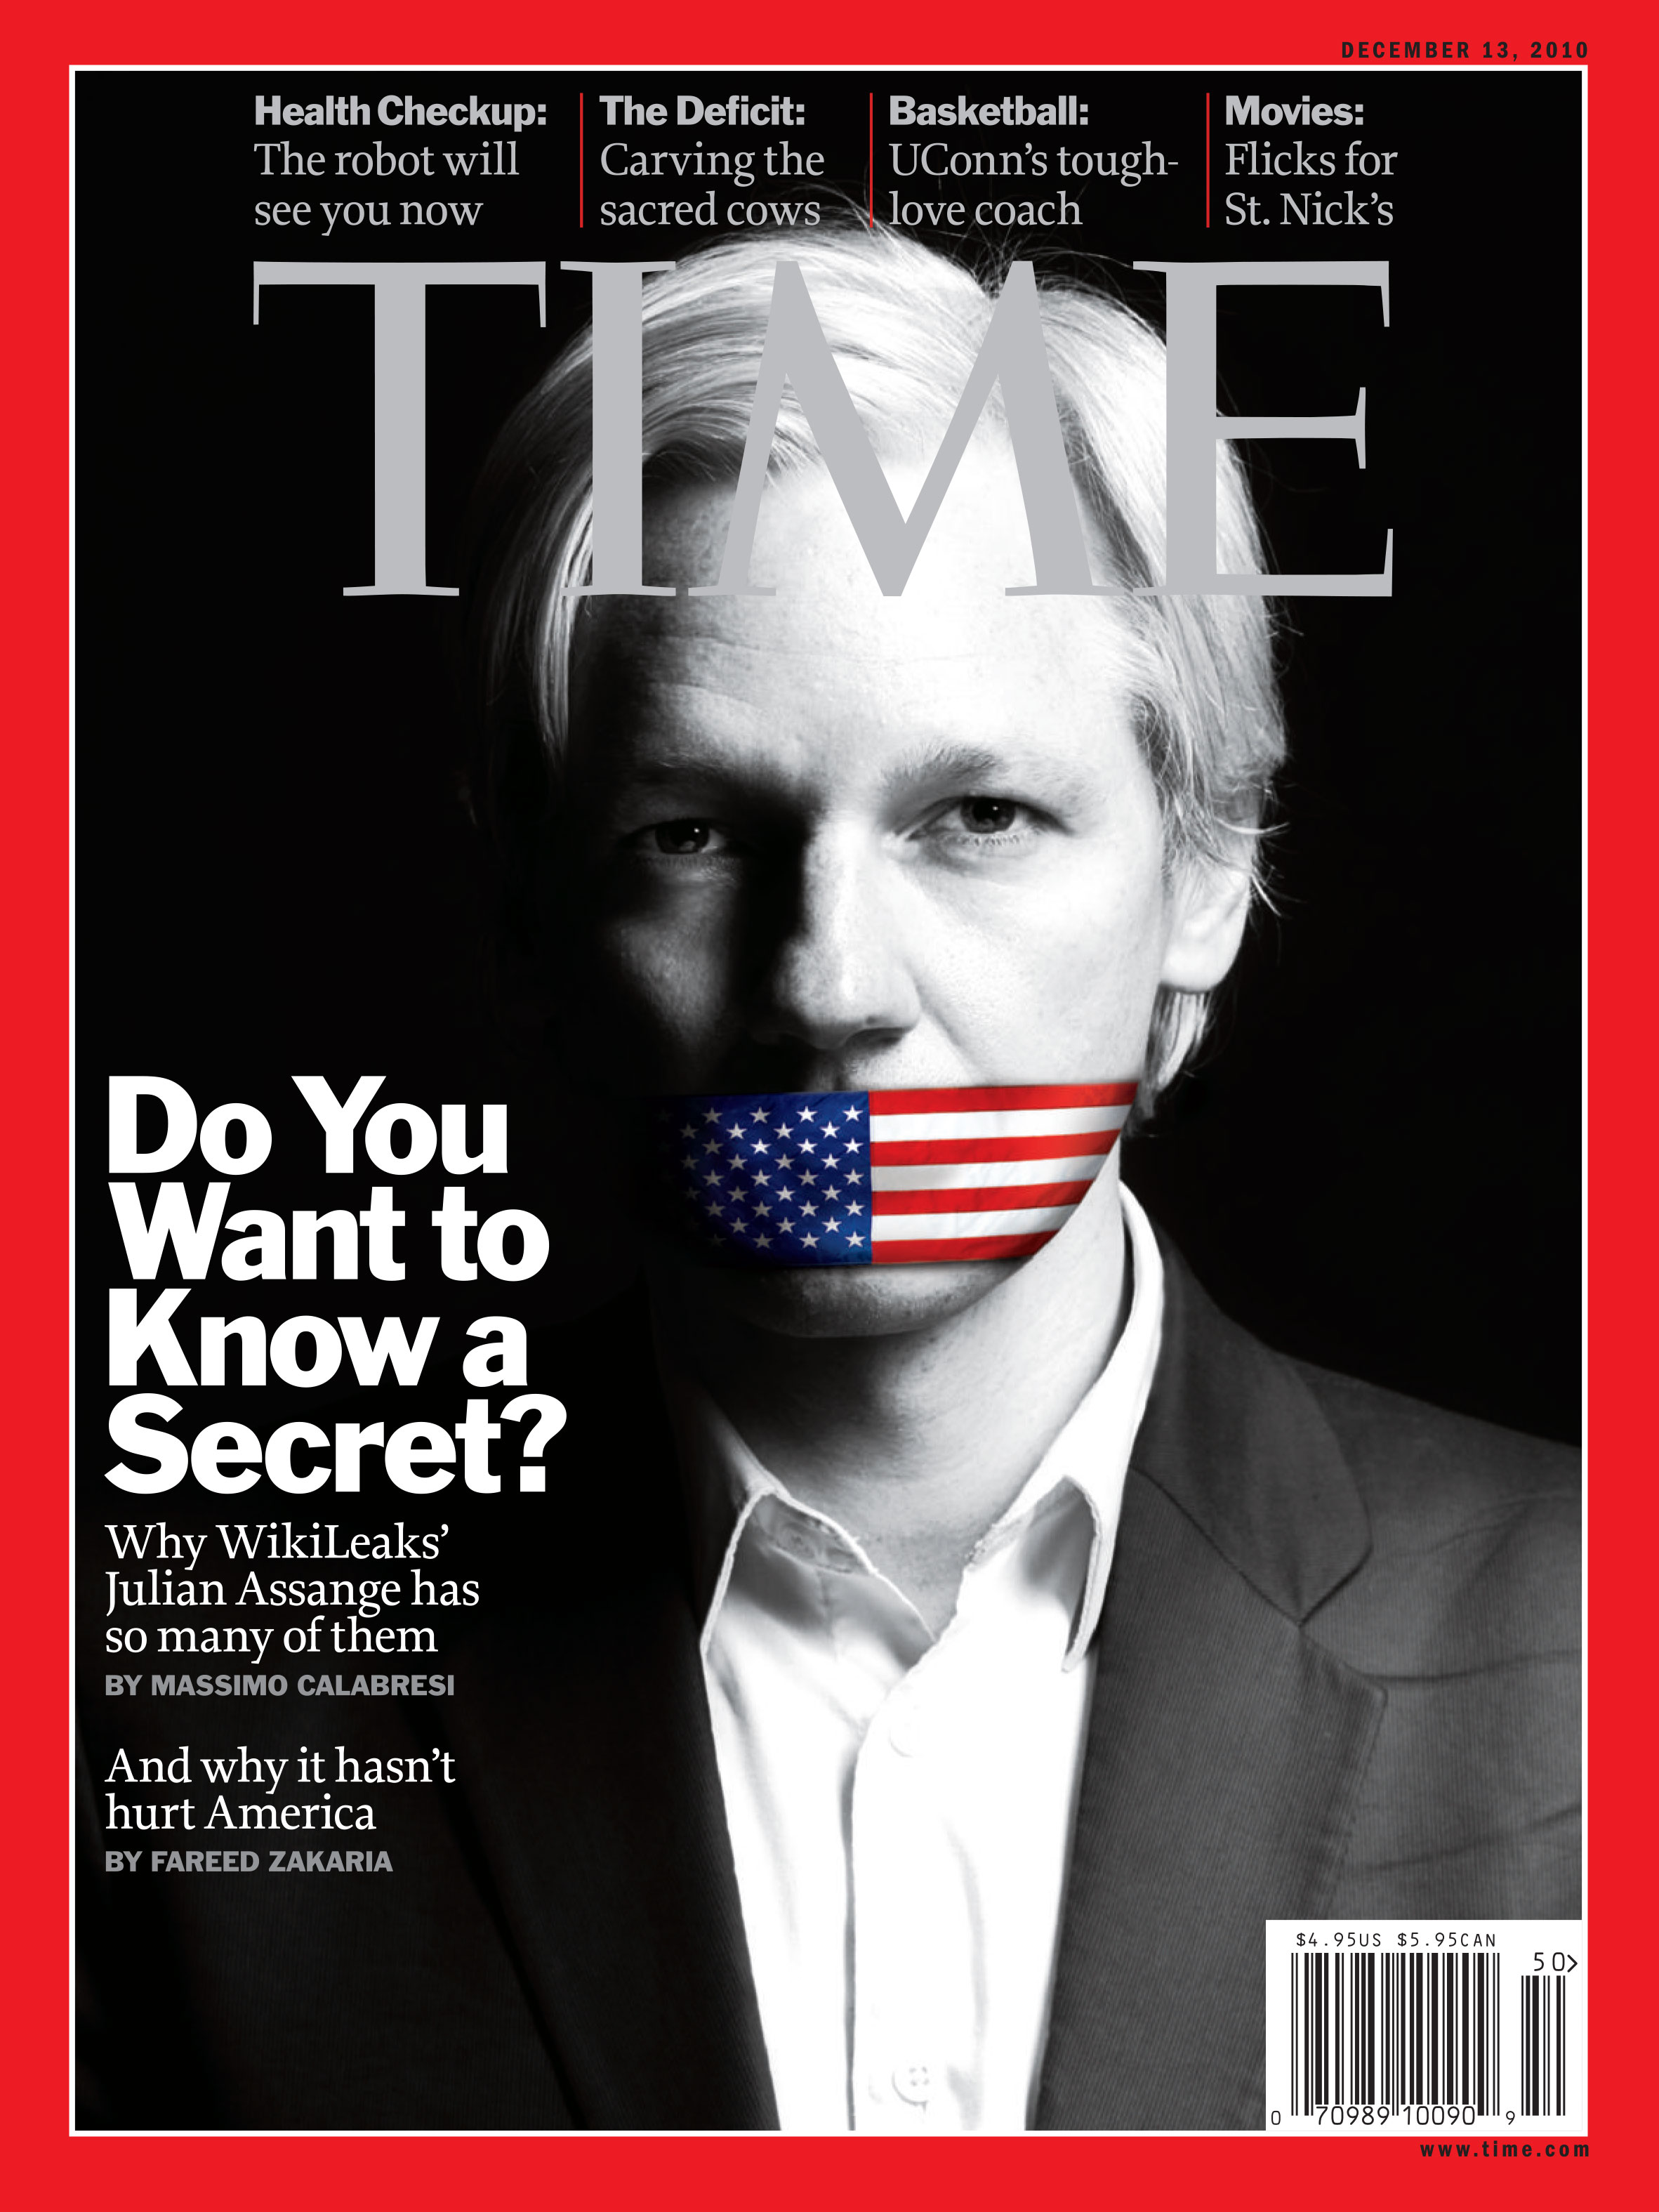 wikileaks-julian-assange-cover-2010.jpg